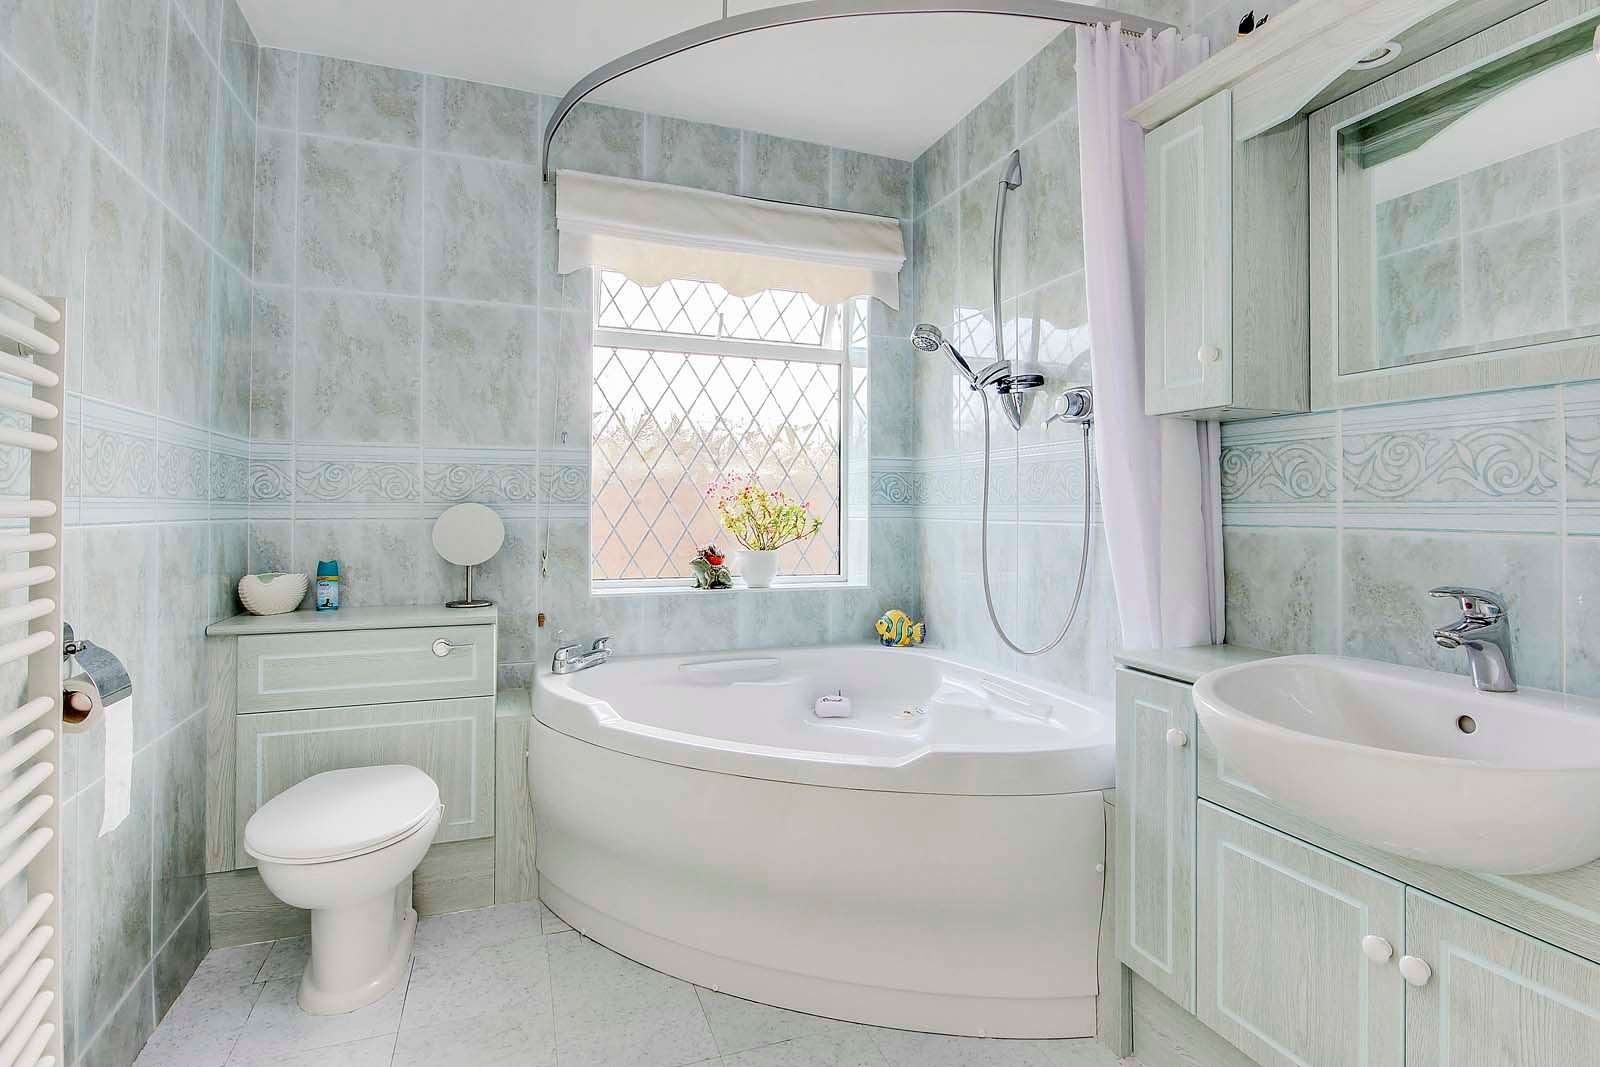 3 bed House for sale in Rustington - Bathroom (Property Image 7)